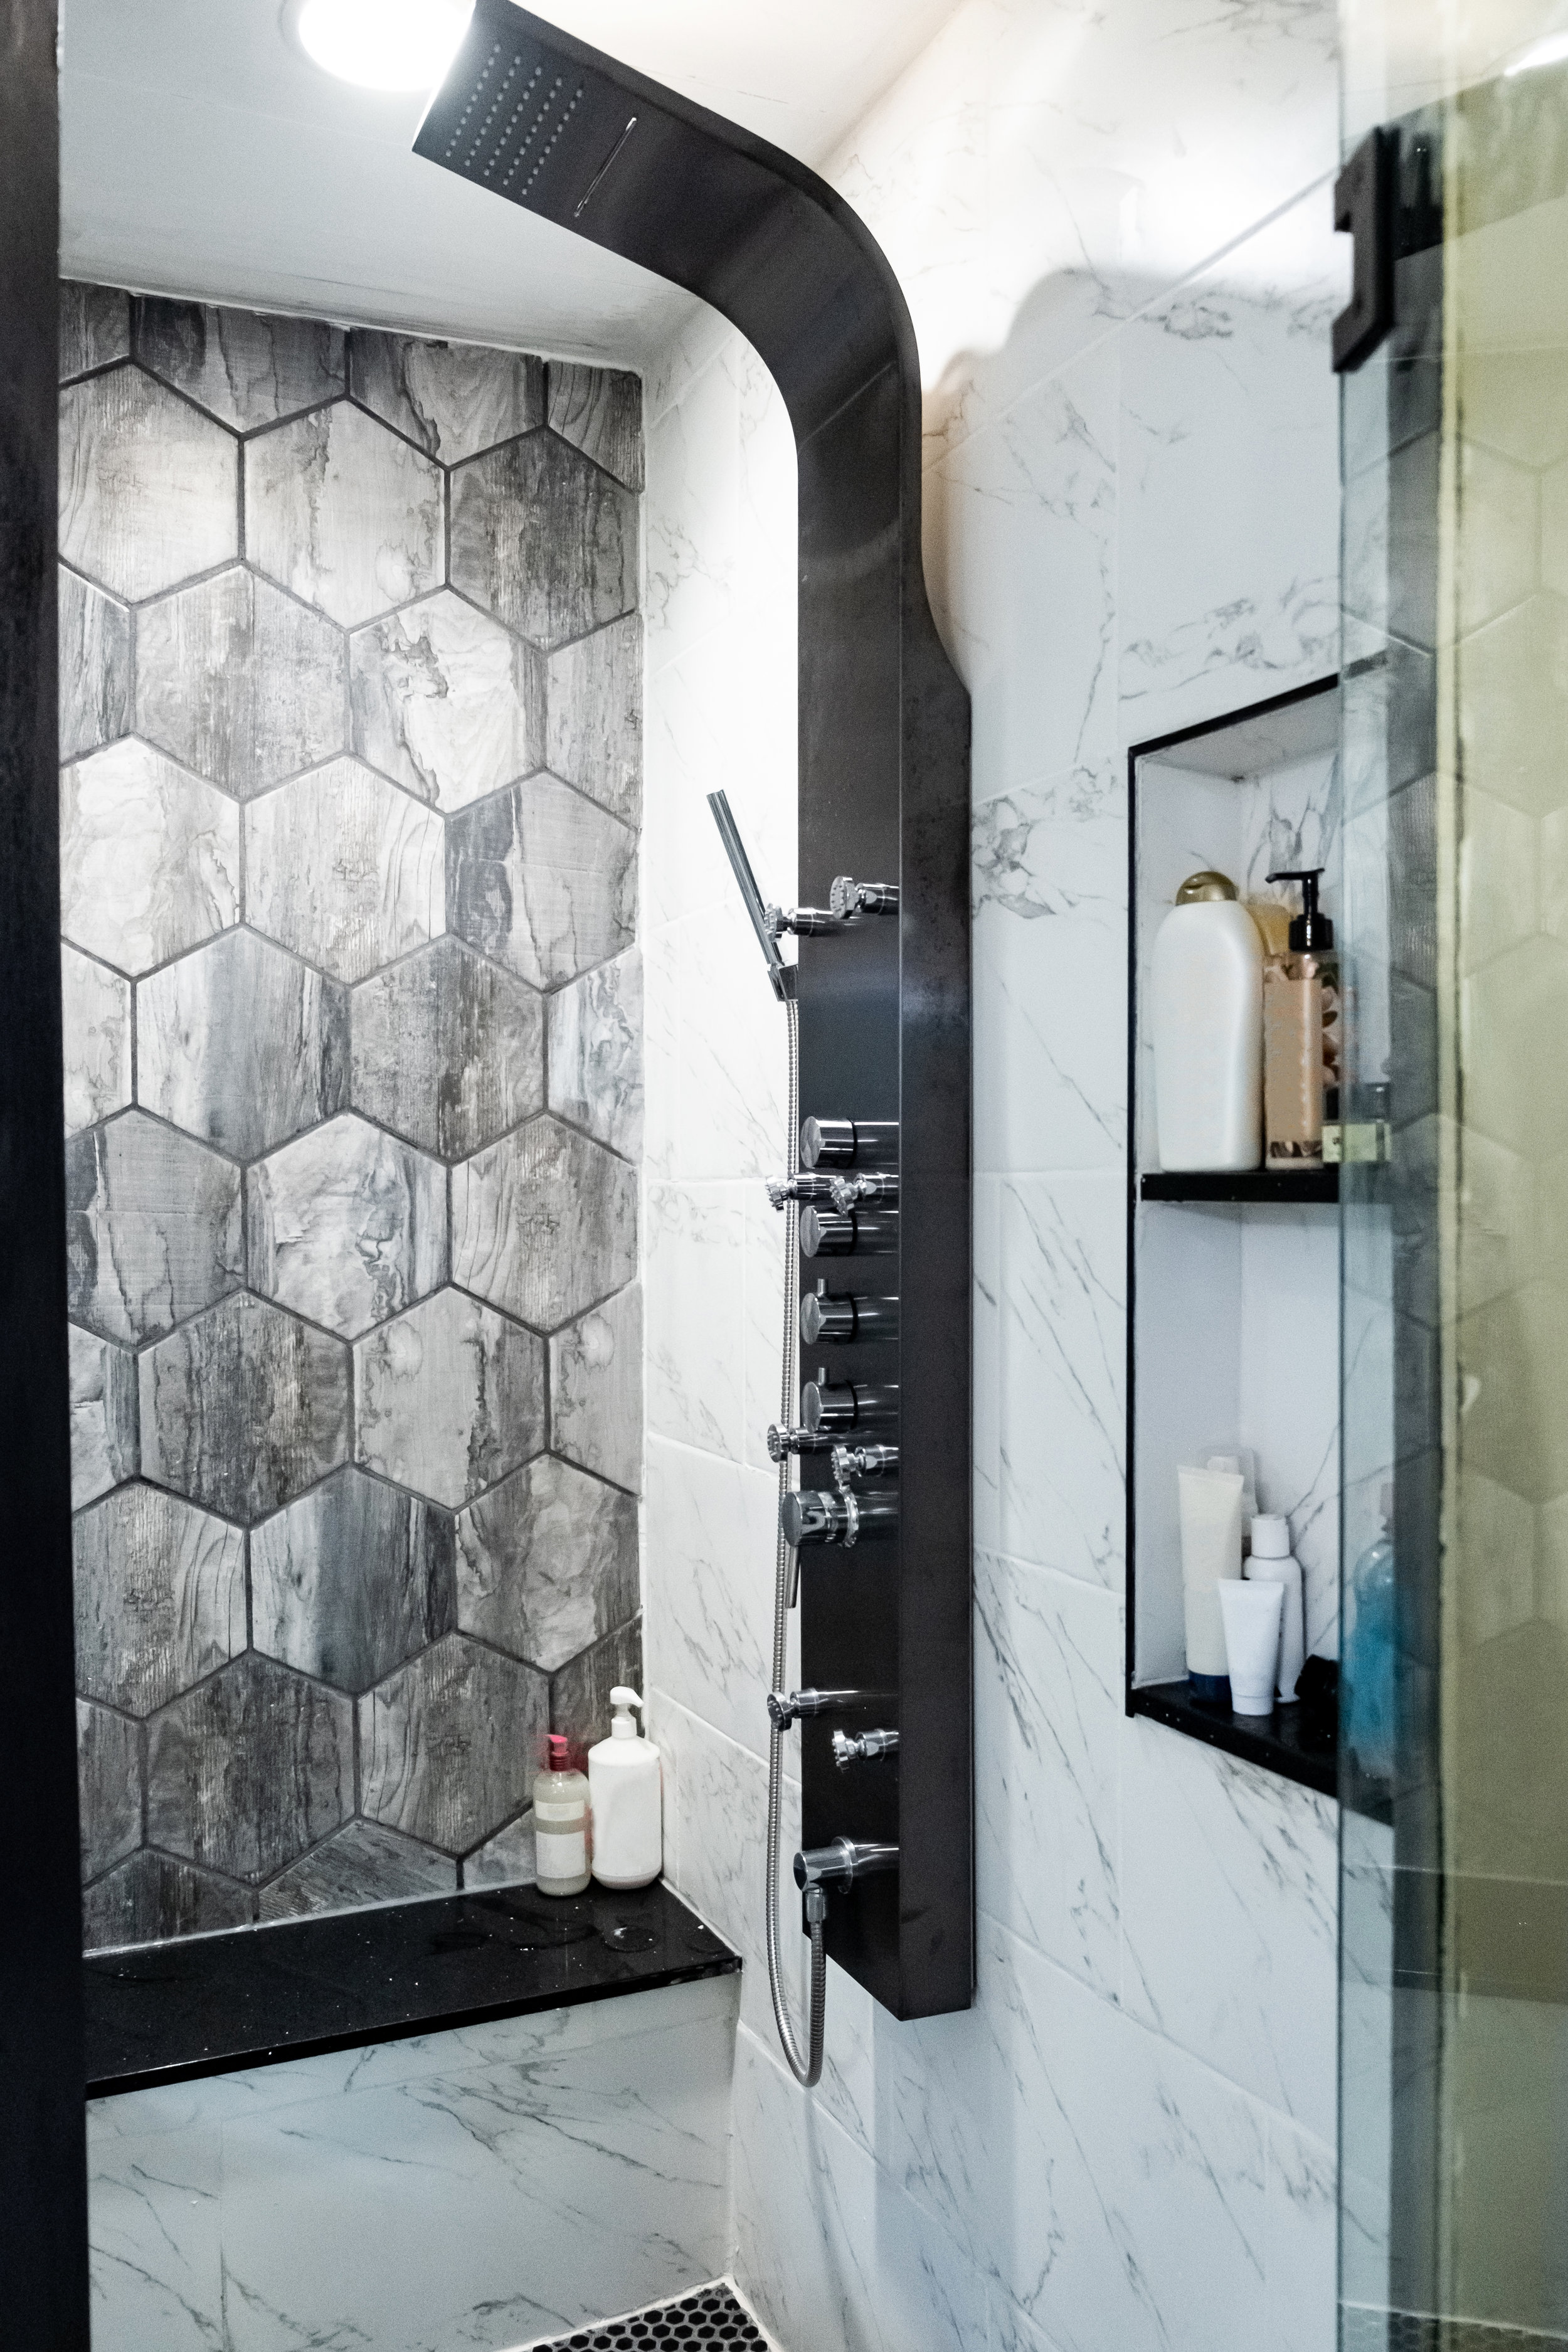 bathroom renovation, remodel, upgrade, modern, black and white, white marble tile, shower unit, cubby, shampoors, conditioner, bathroom